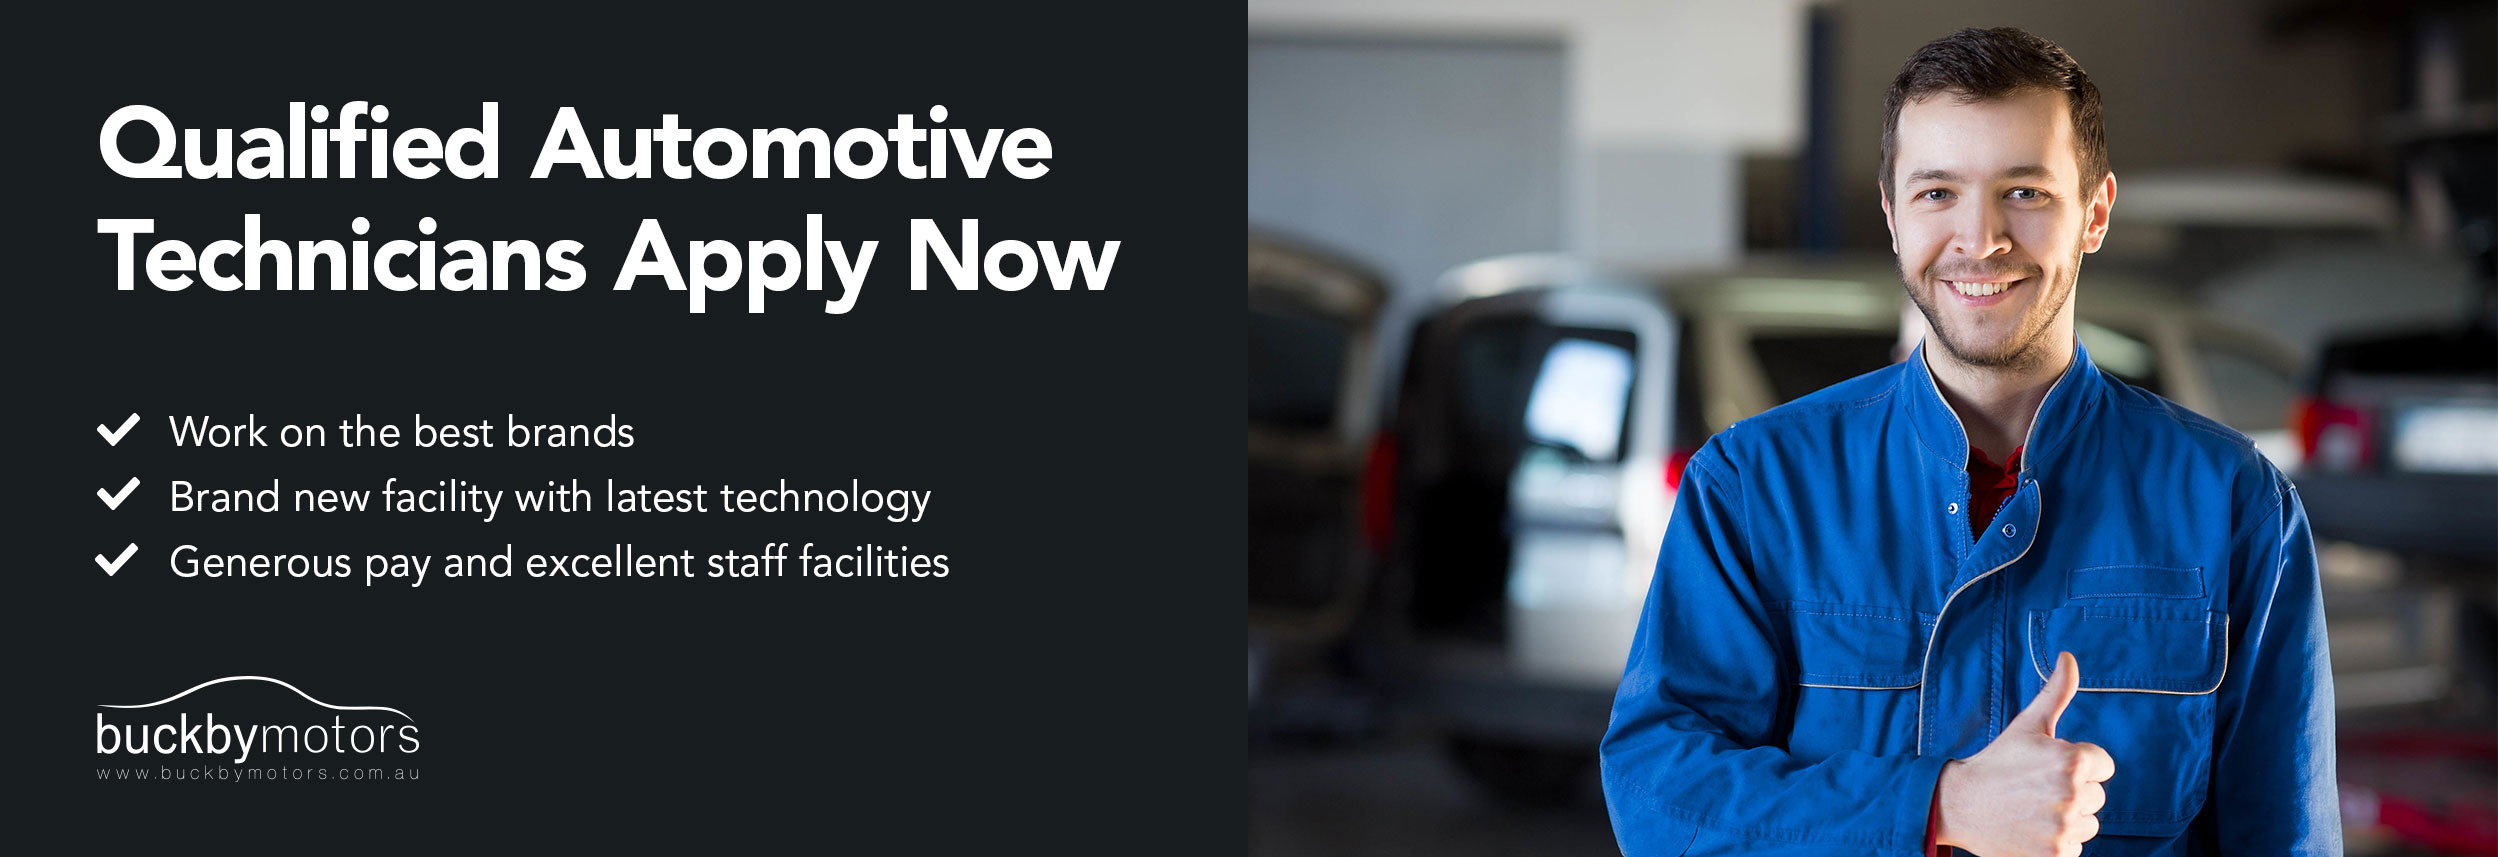 buckby-qualified-automotive-technicians-apply-now.jpg